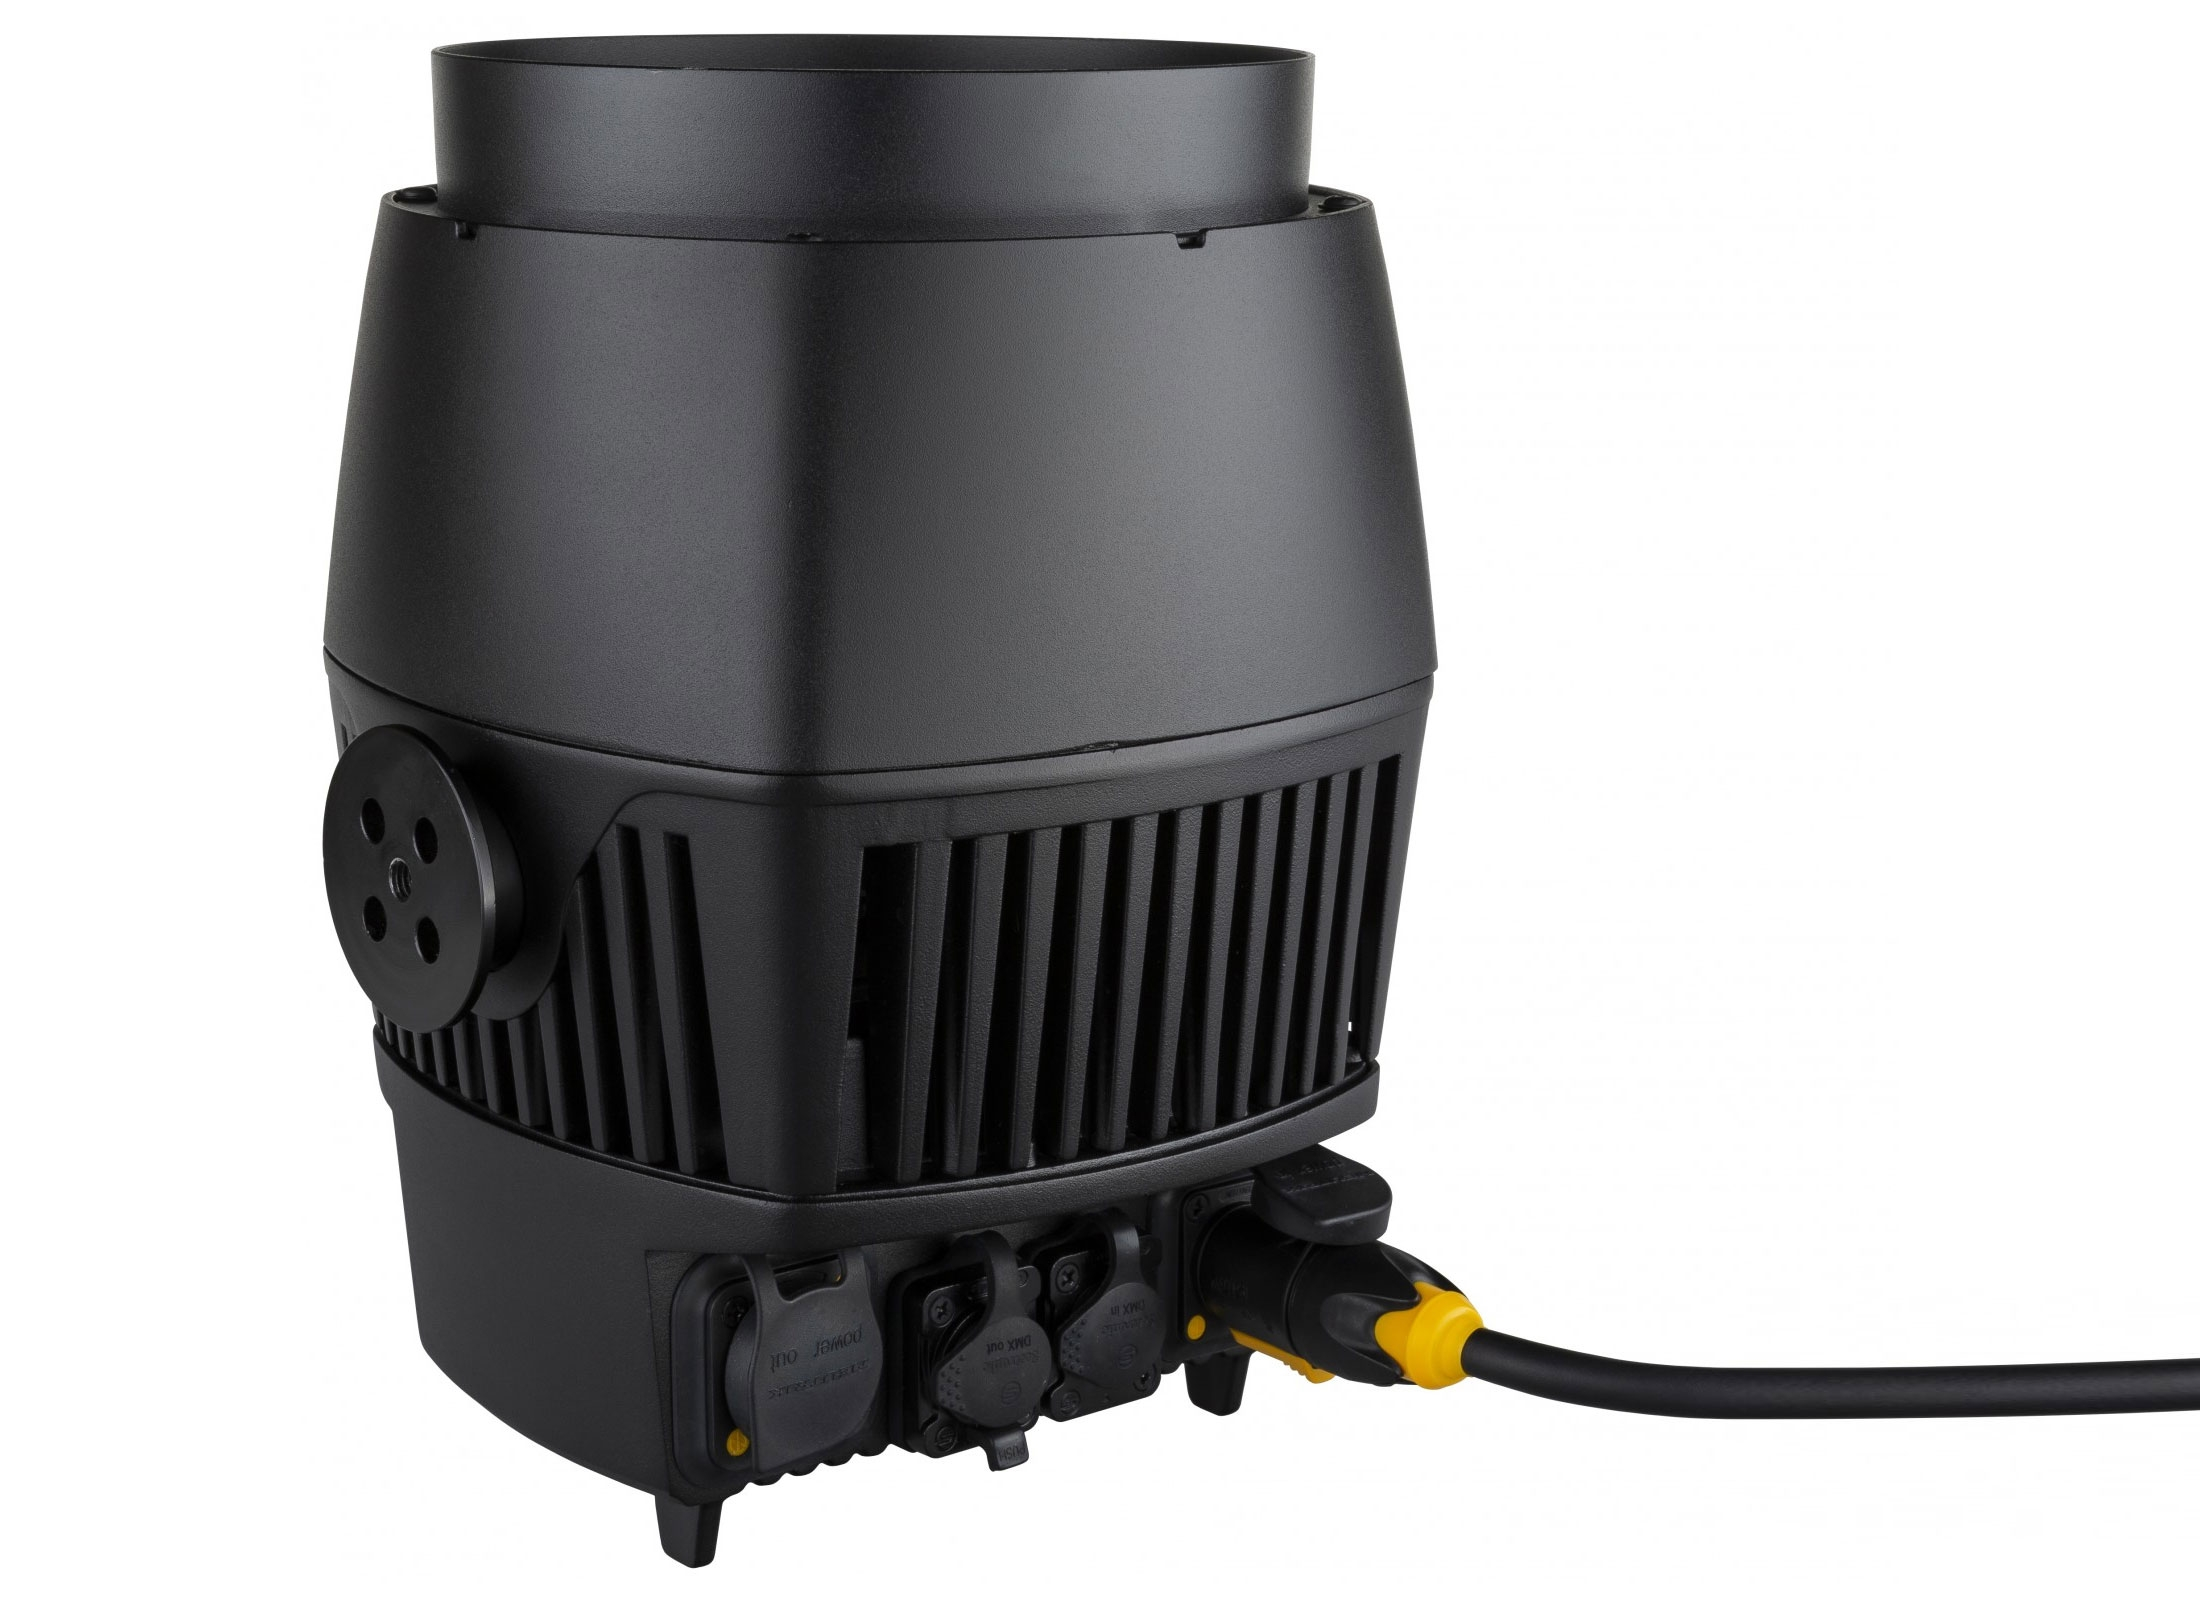 Briteq Bt Coloray 60r Outdoor Pinspot Online At Low Prices